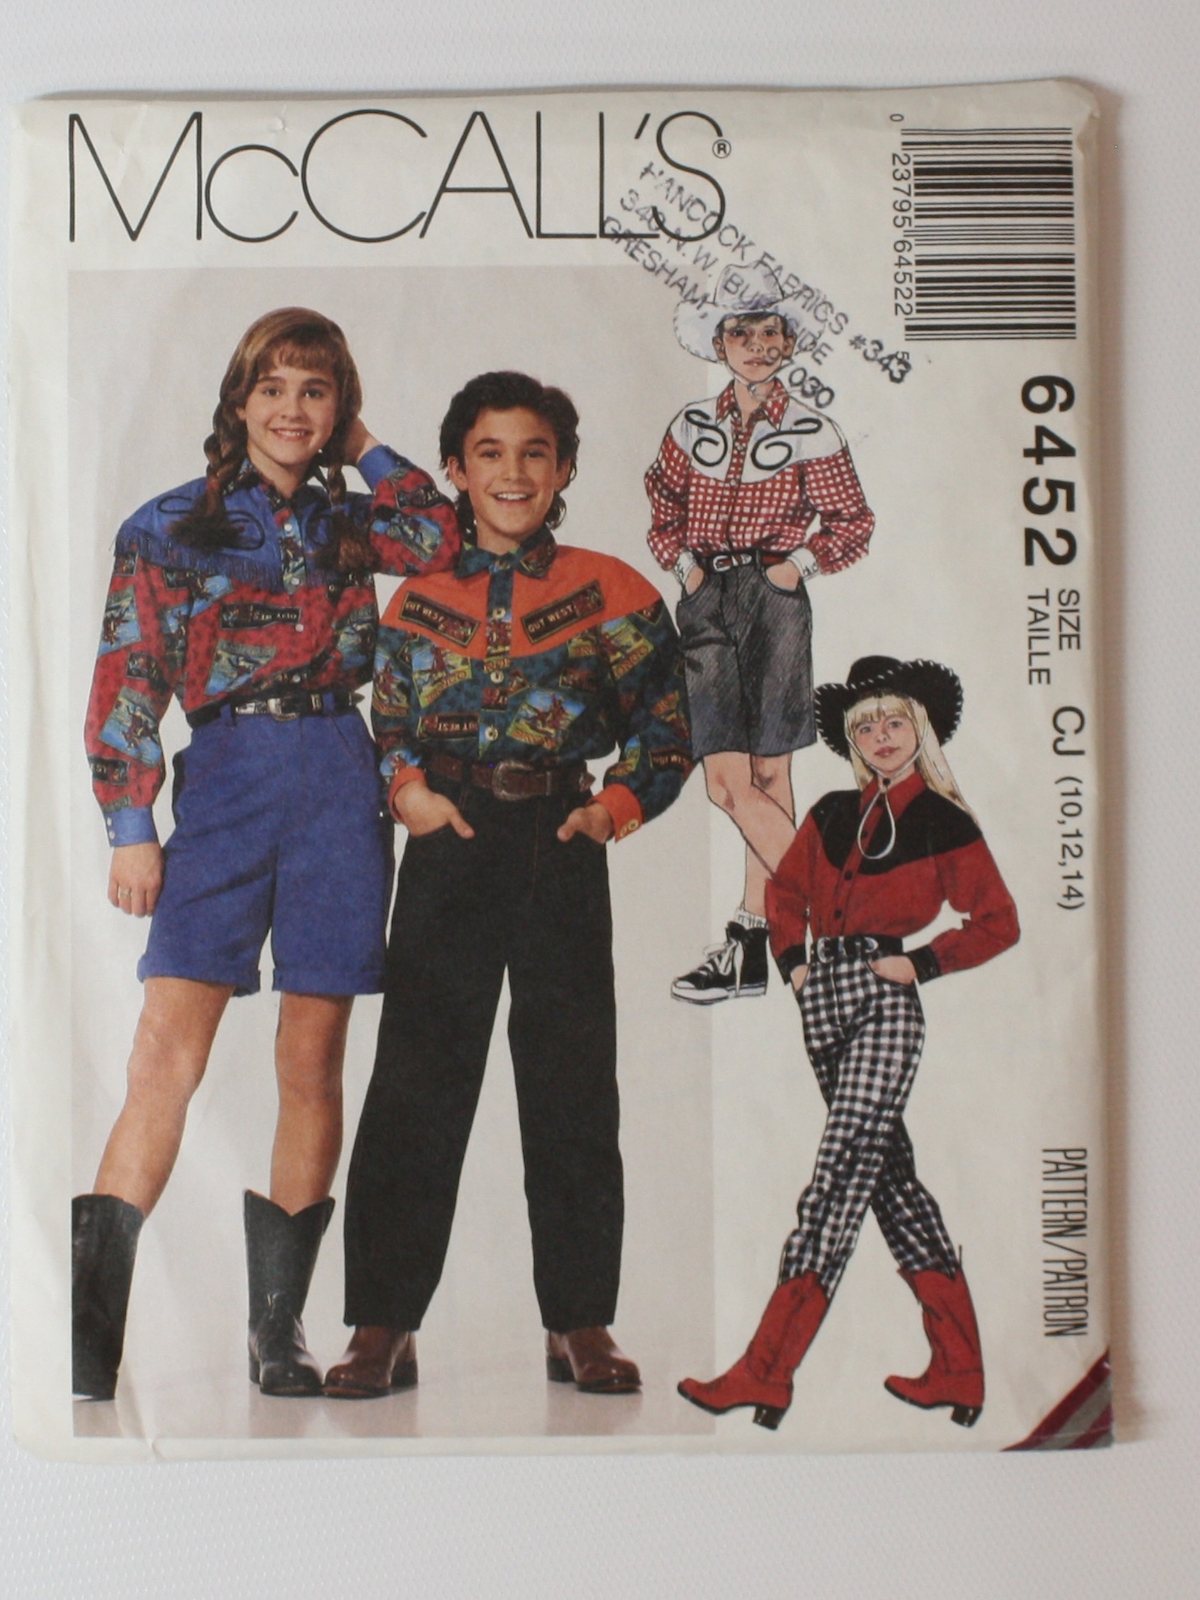 90s sewing pattern mccalls pattern no 6452 early 90s mccalls 90s sewing pattern mccalls pattern no 6452 early 90s mccalls pattern no 6452 unisex girls or boys western shirt pants and shorts shirt has front jeuxipadfo Images